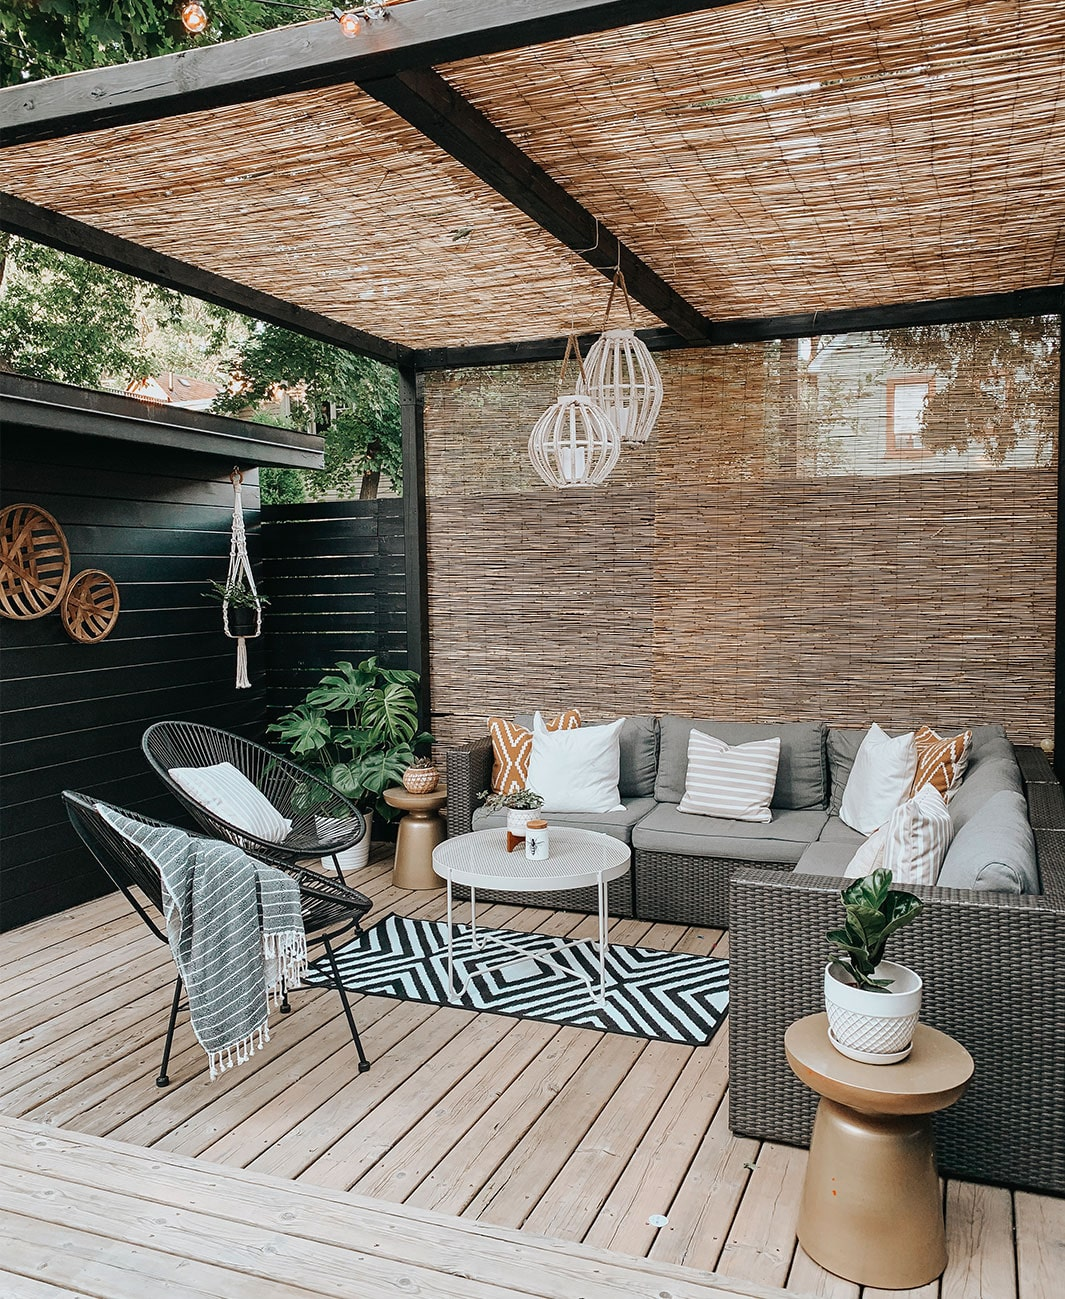 A stylish backyard deck with an outdoor couch and two chairs, a print rug, a white coffee table and a plant on a side table.